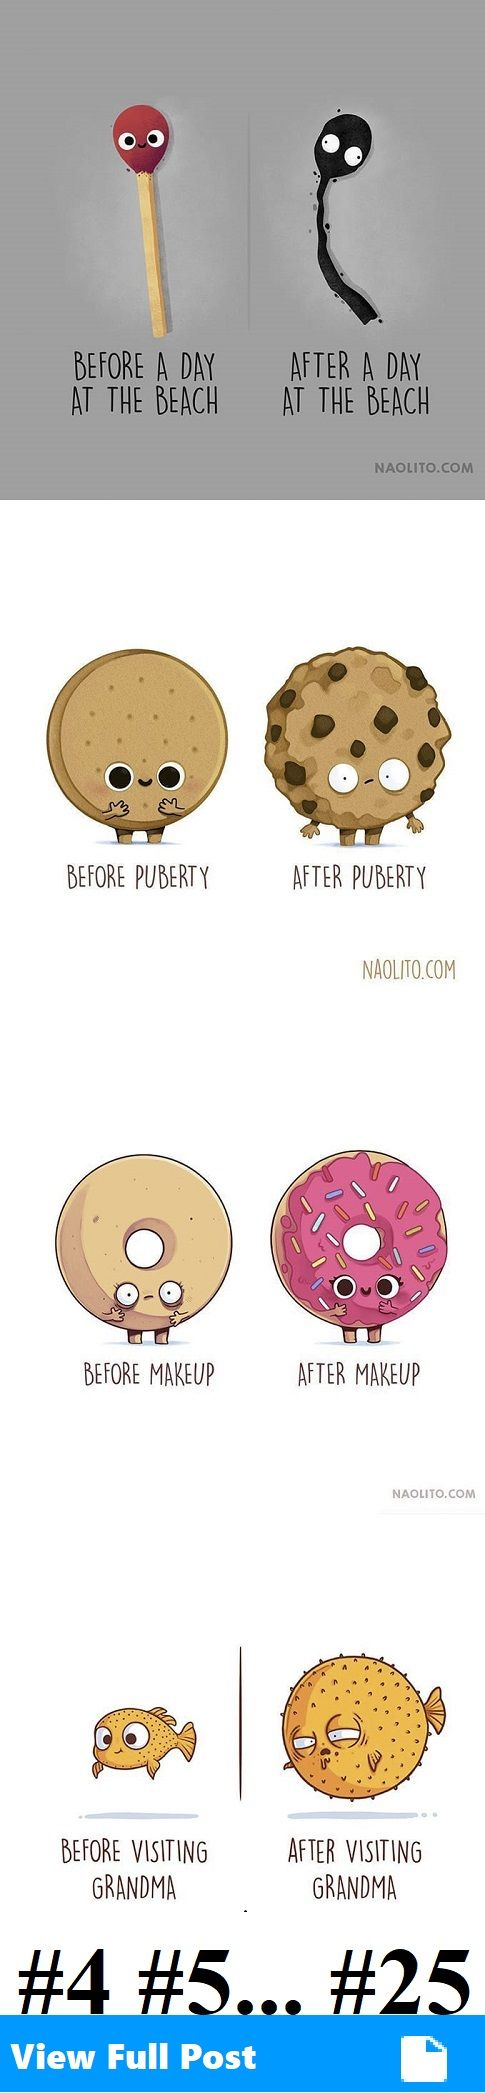 Adorably Witty Illustrations Of Everyday Objects